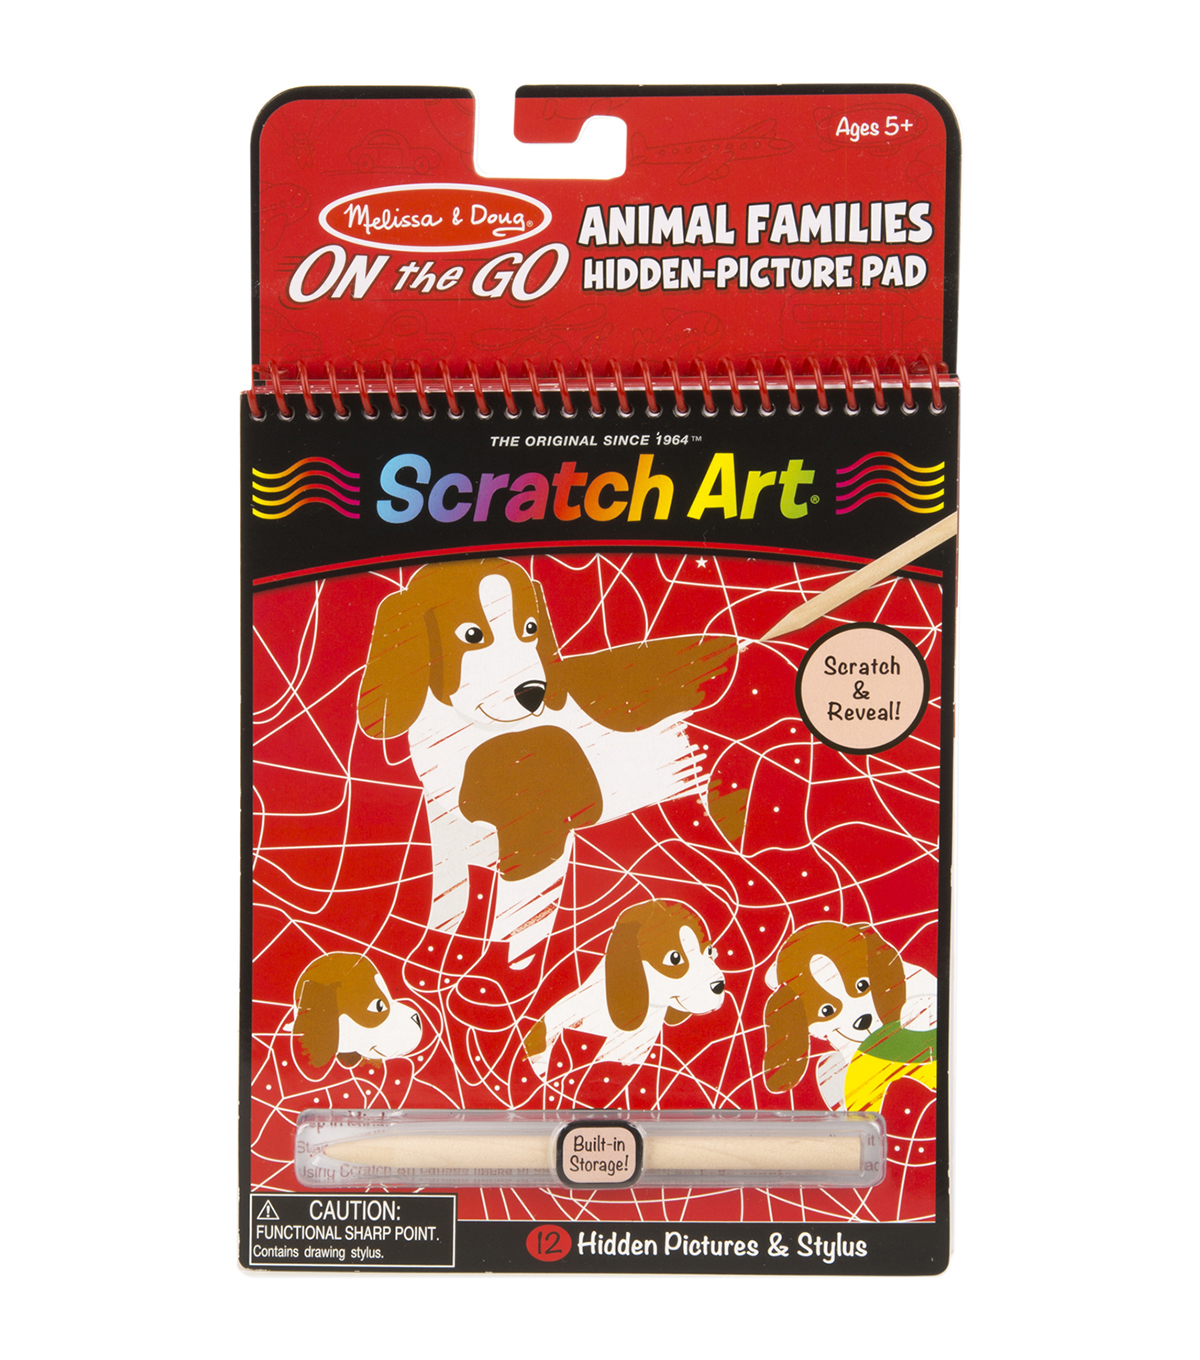 Melissa & Doug On The Go Scratch Art Animal Families Hidden Picture Pad